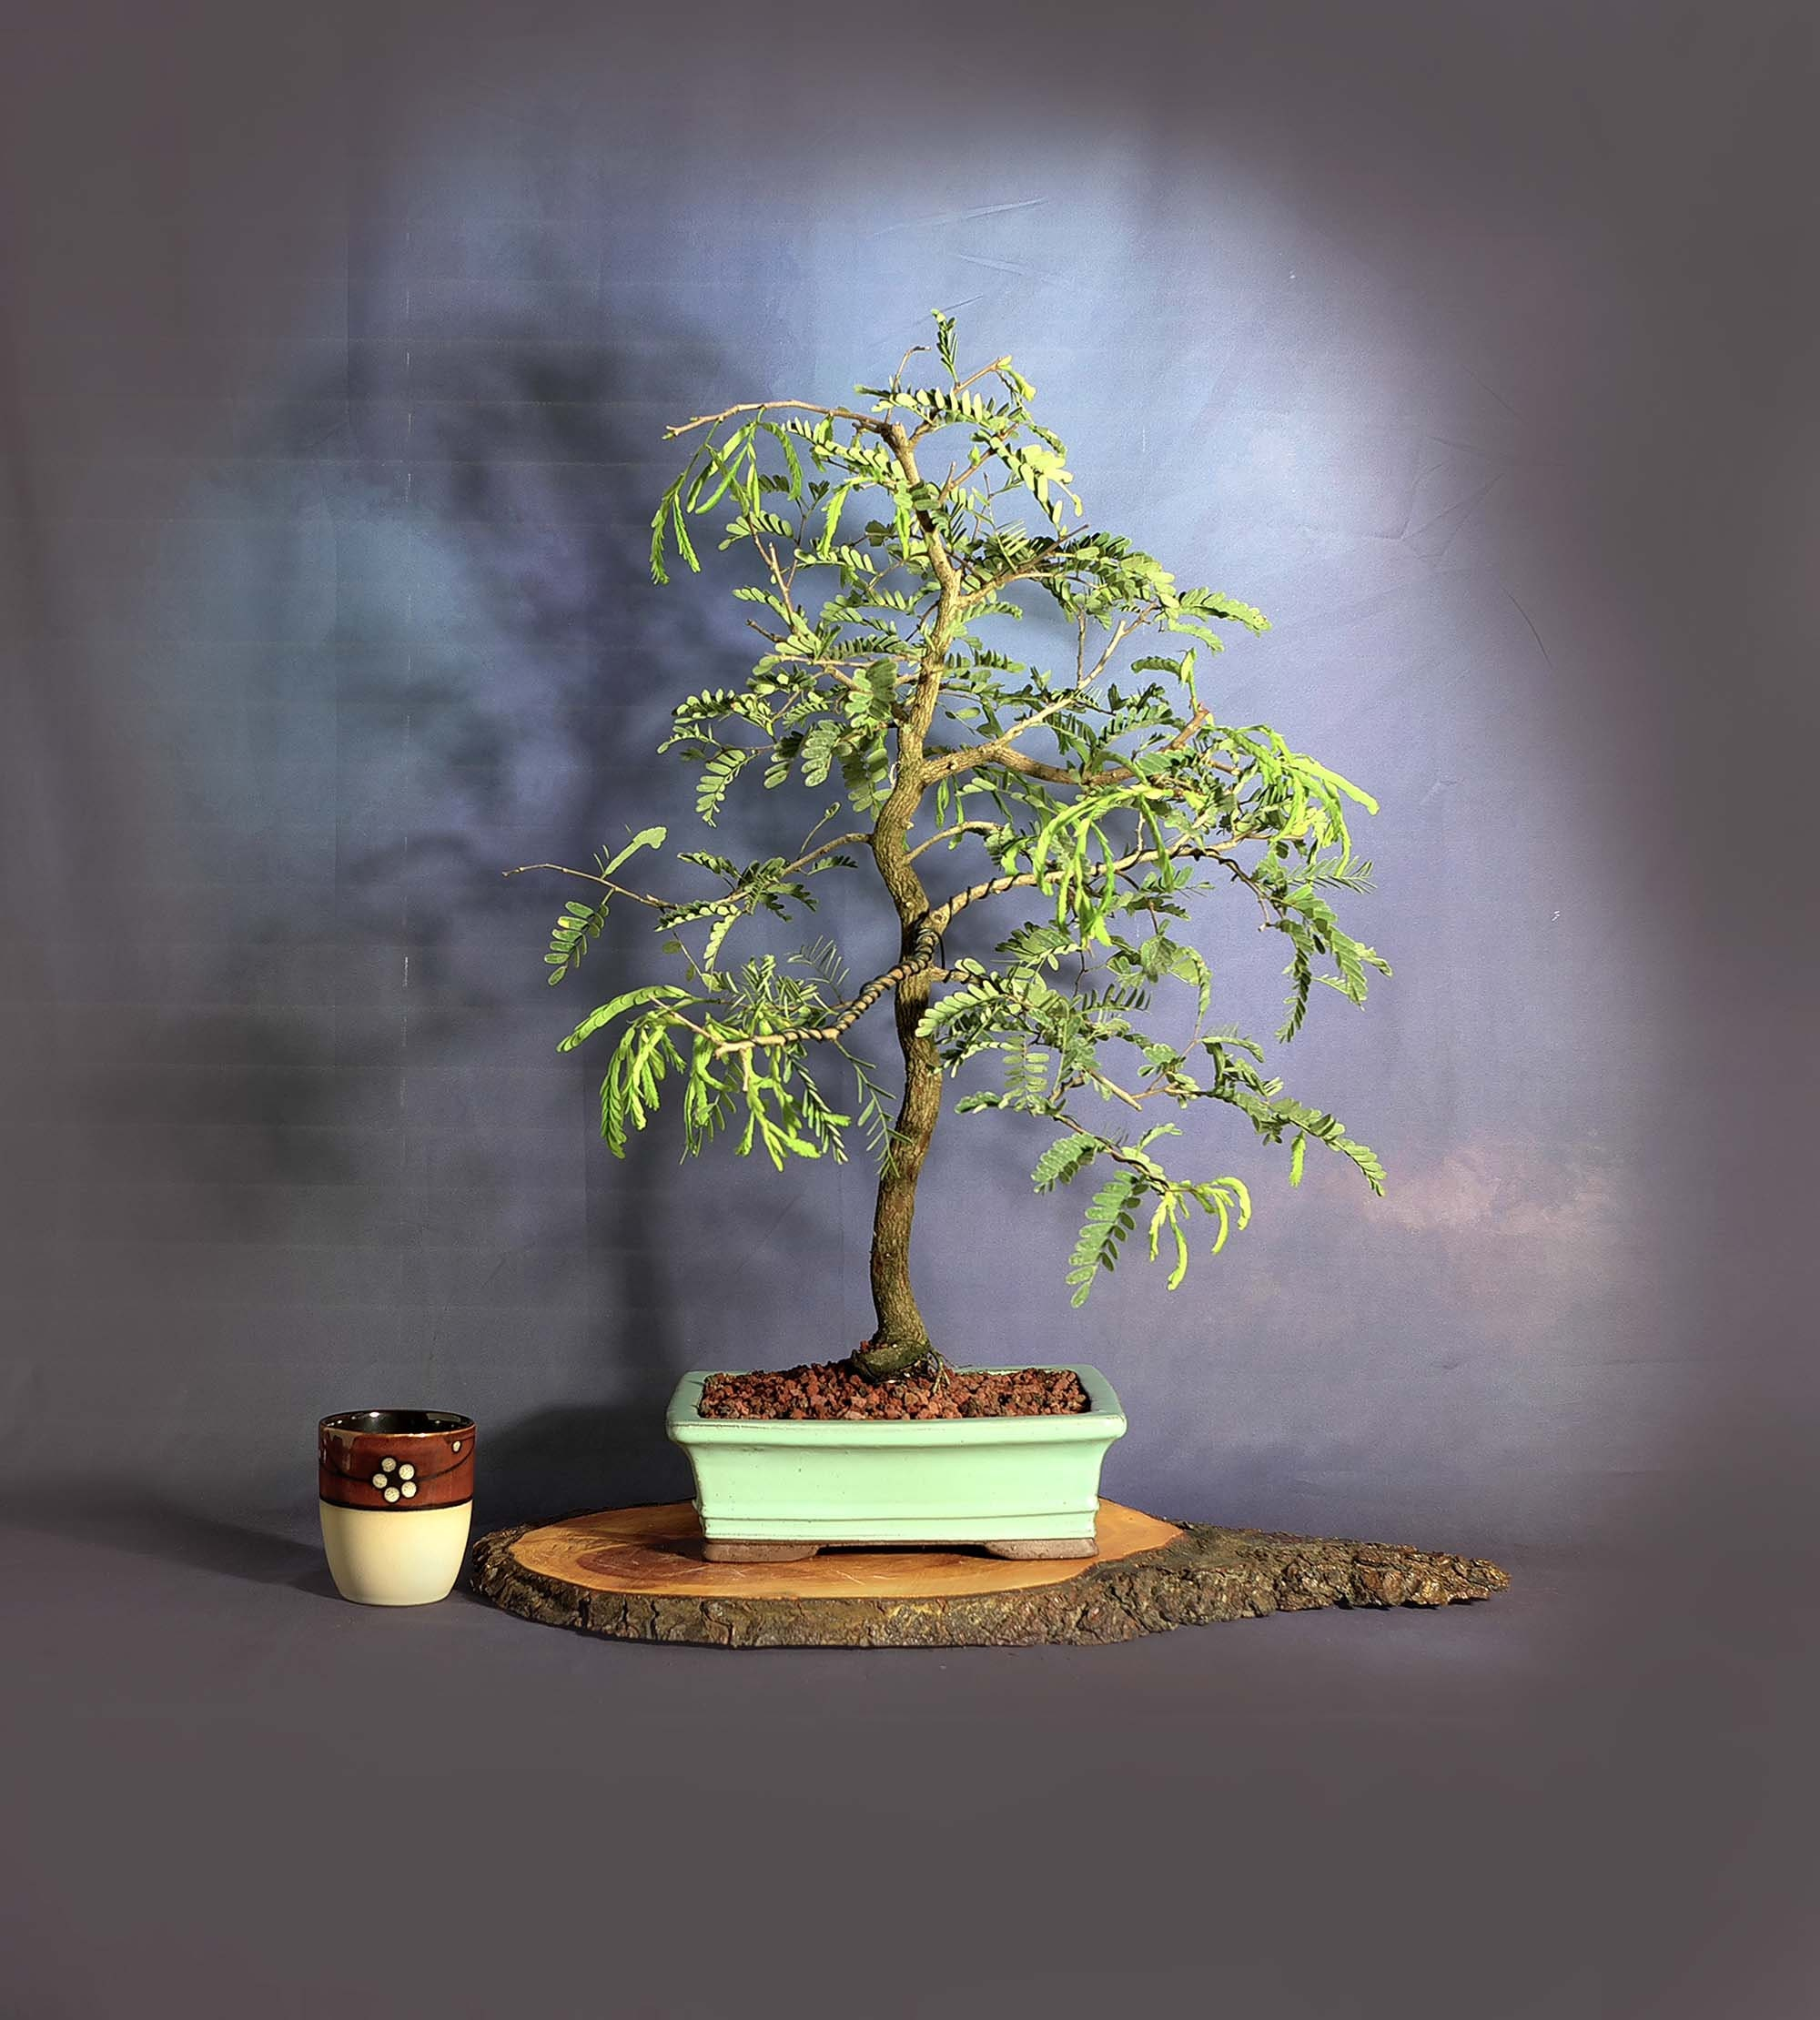 Tamarind Bonsai Tree First Responder Collection From Livebonsaitree